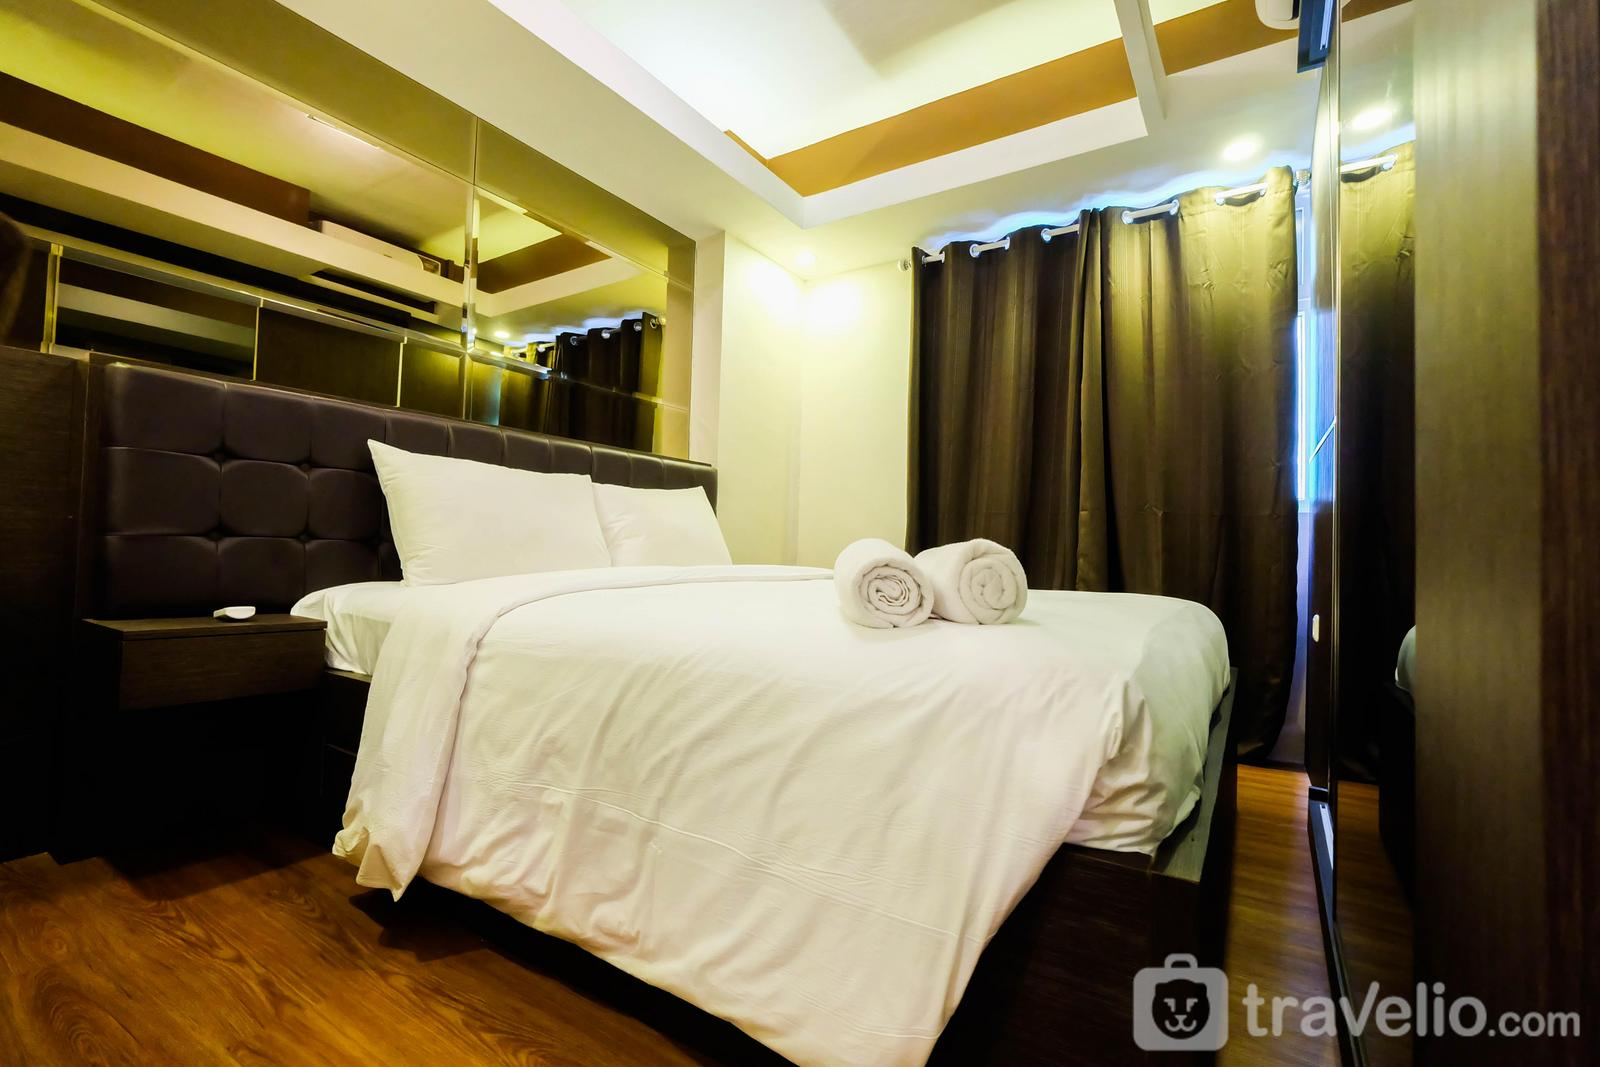 Green Pramuka Cempaka Putih - Spacious Studio Room at Green Pramuka Apartment By Travelio